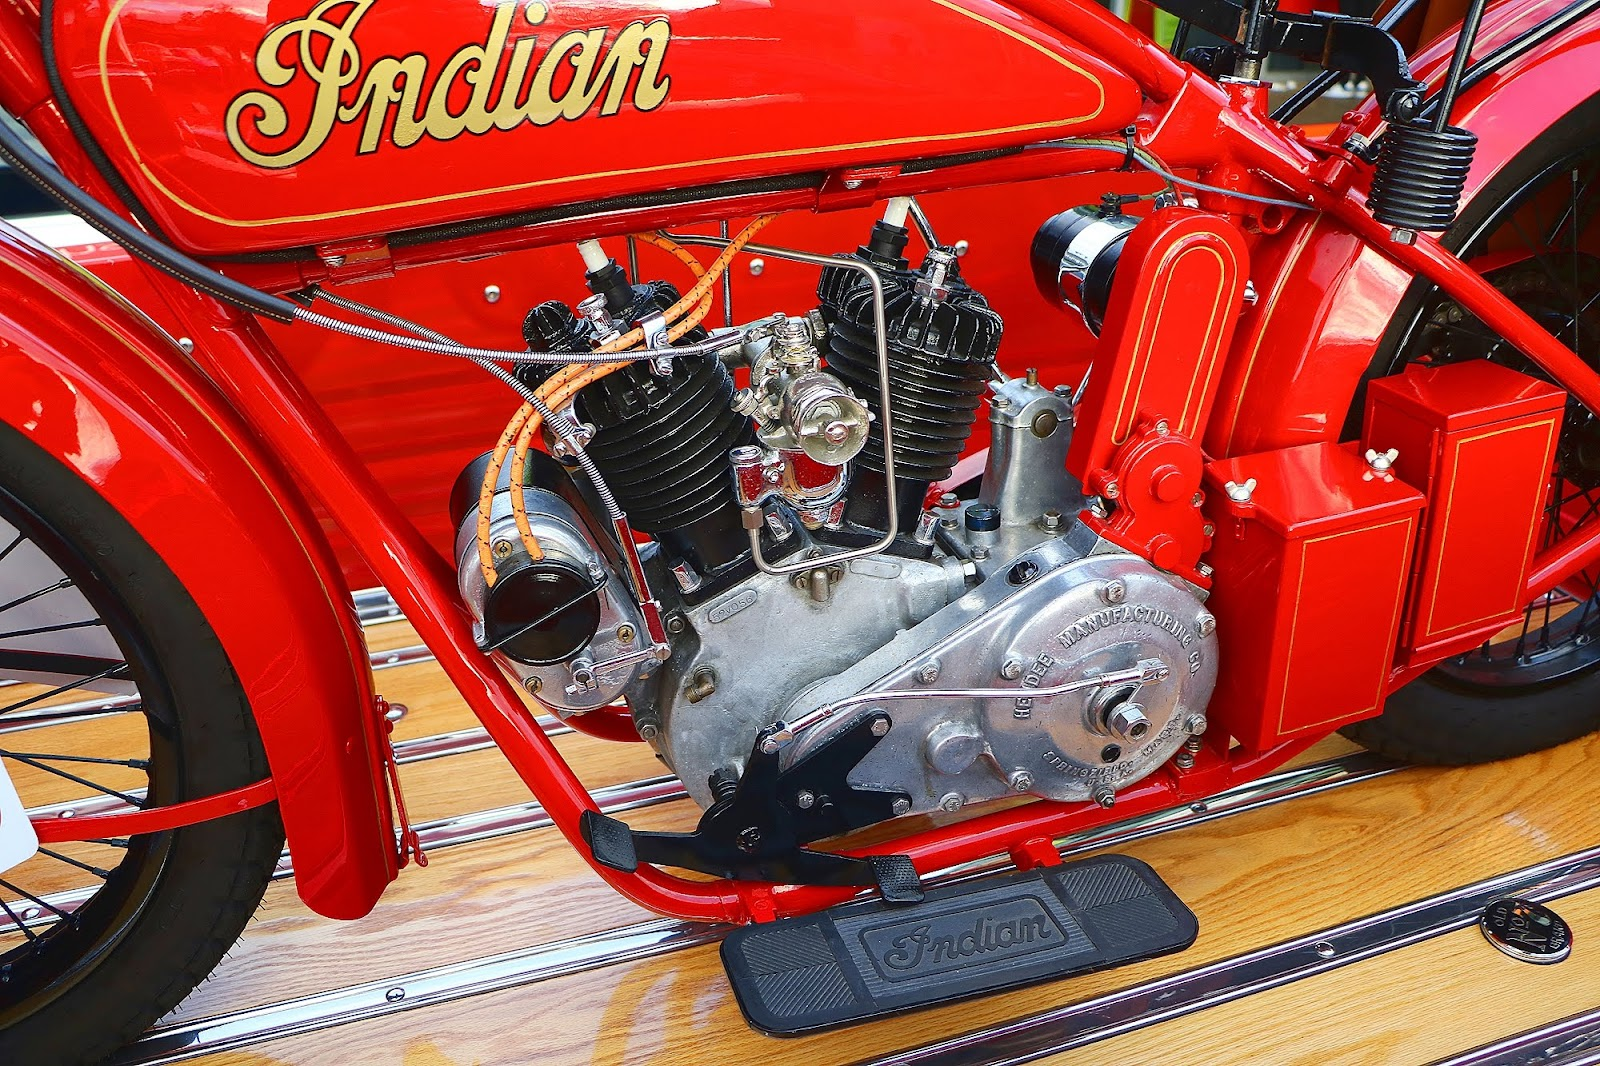 1955 GMC Truck and 1923 Indian Engine.jpg